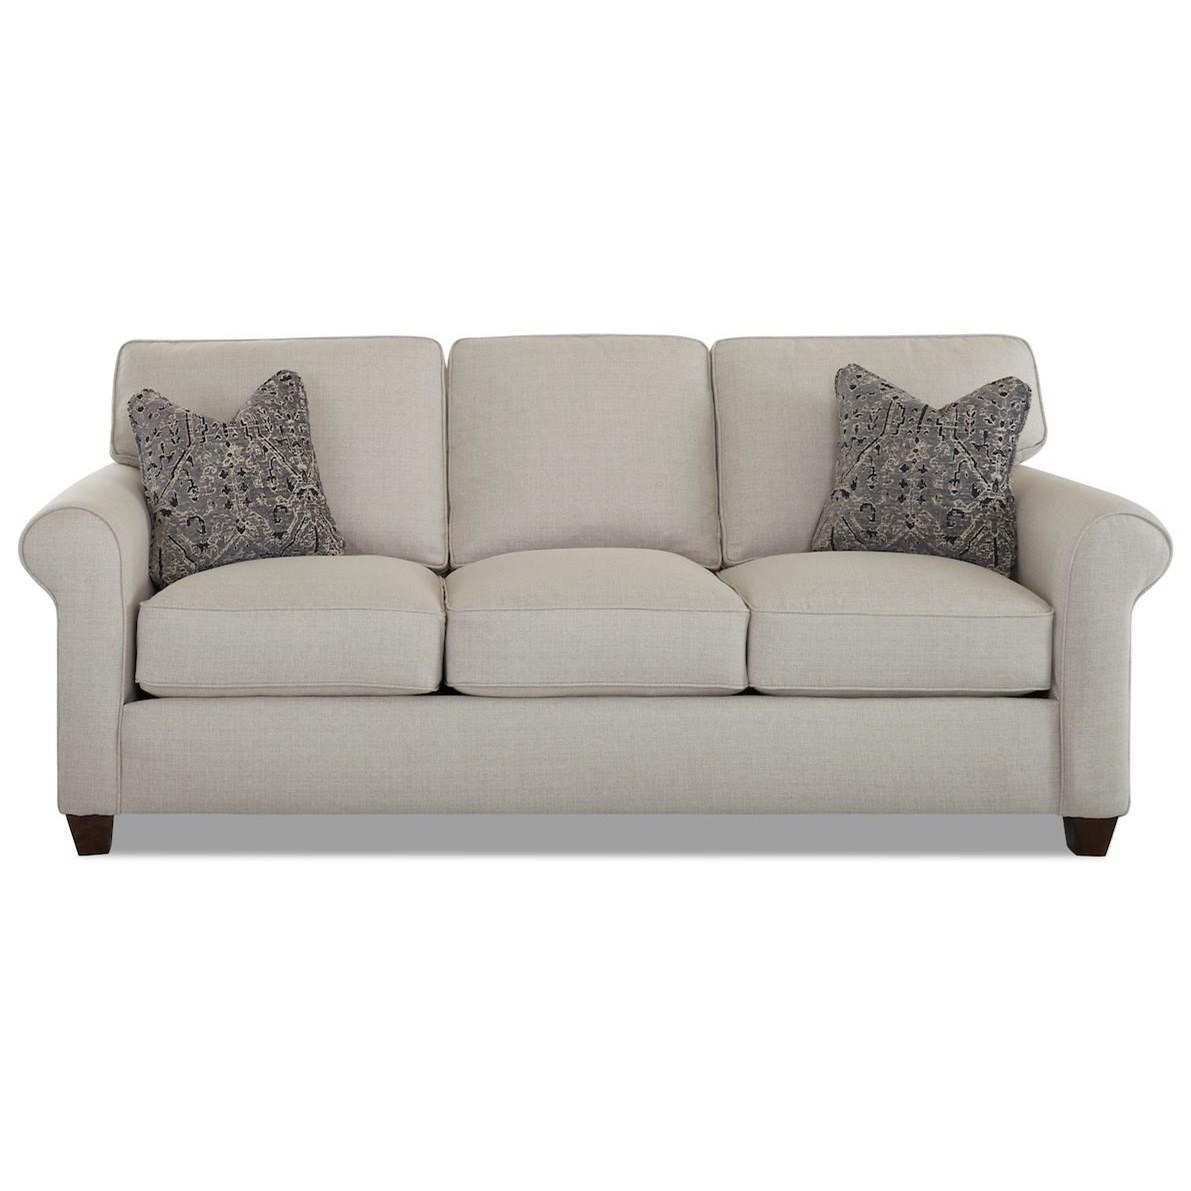 Extra Large Queen Dreamquest Sleeper Sofa